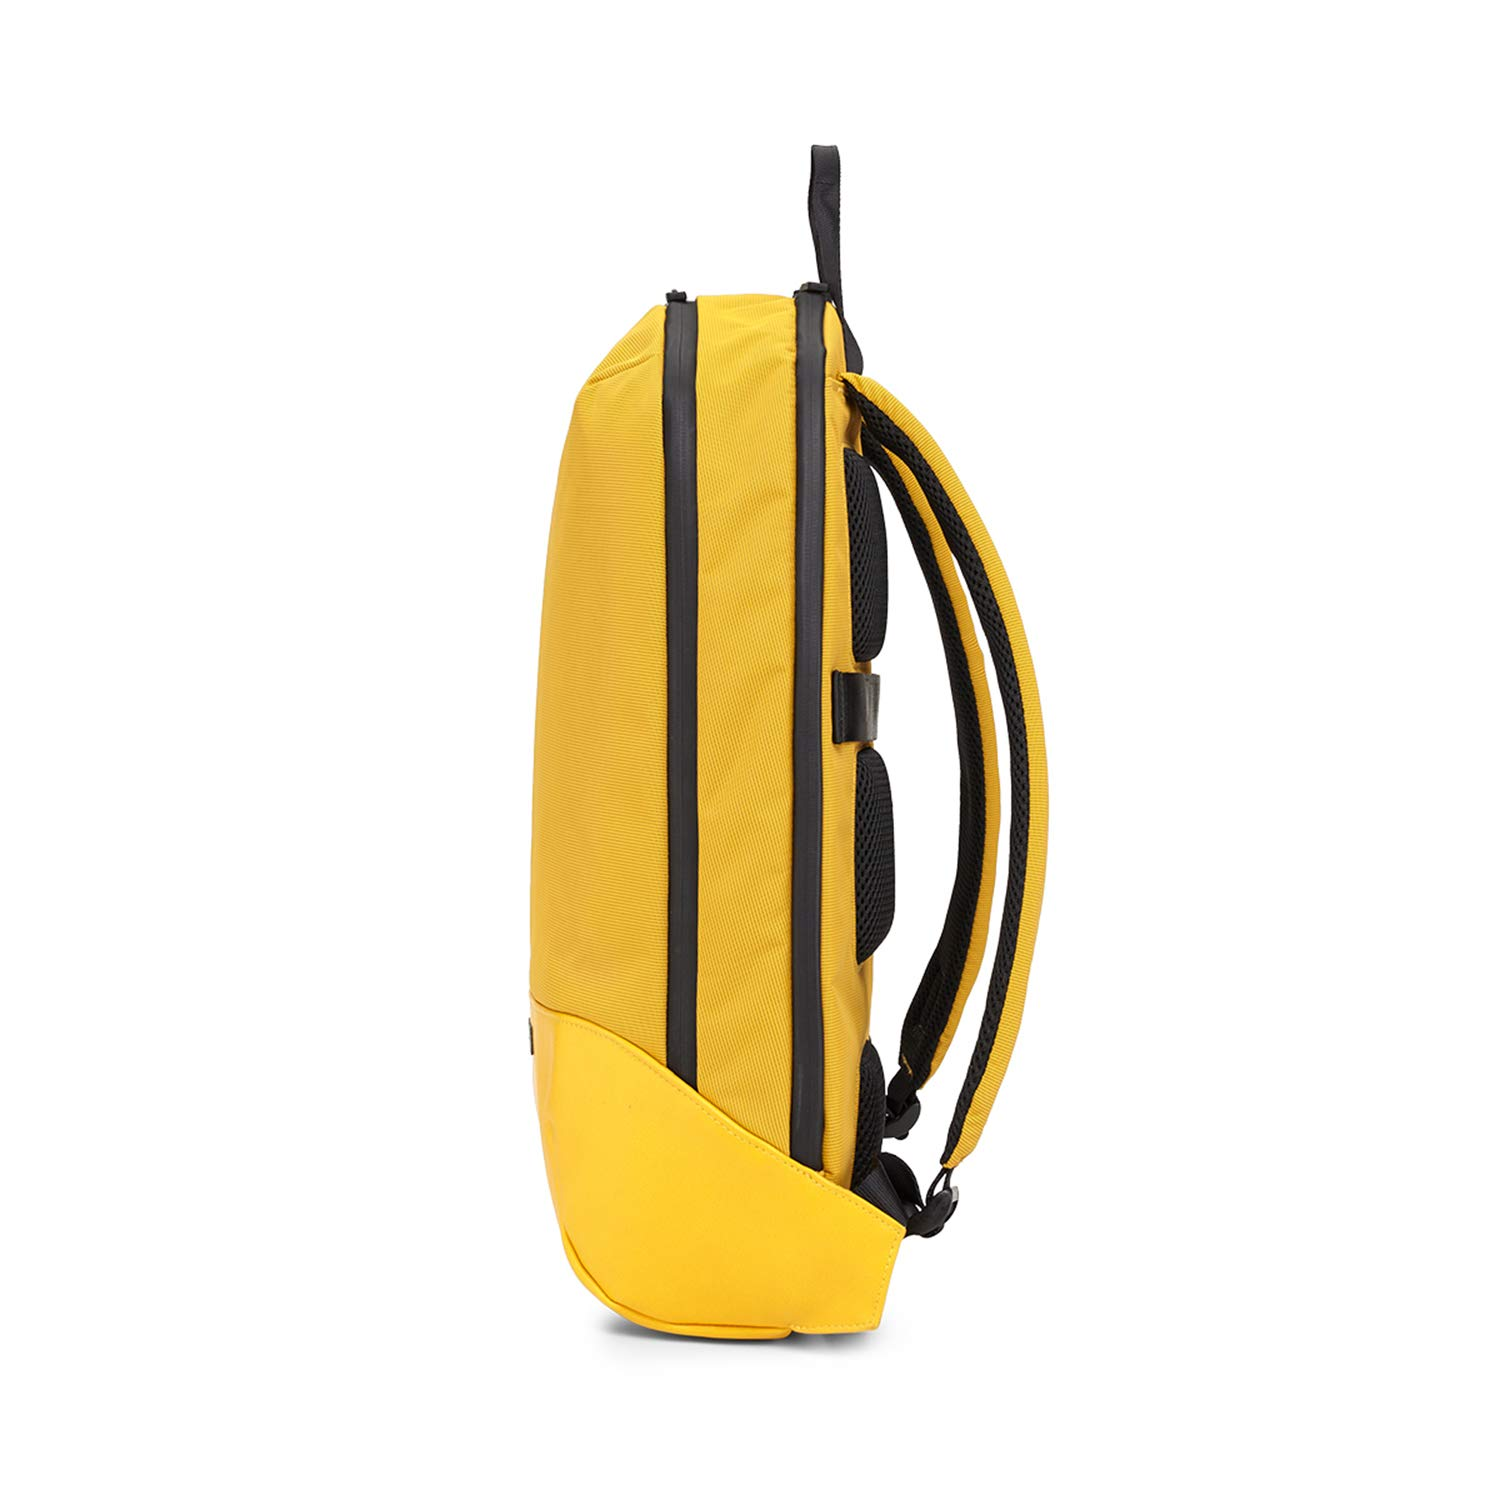 Moleskine Metro Backpack, Orange Yellow -  For Work, School, Travel & Everyday Use, Space for Devices, Tablet, Laptop, & Chargers, Notebook Planner or Organizer, Padded Adjustable Straps Secure Zipper by Moleskine (Image #3)